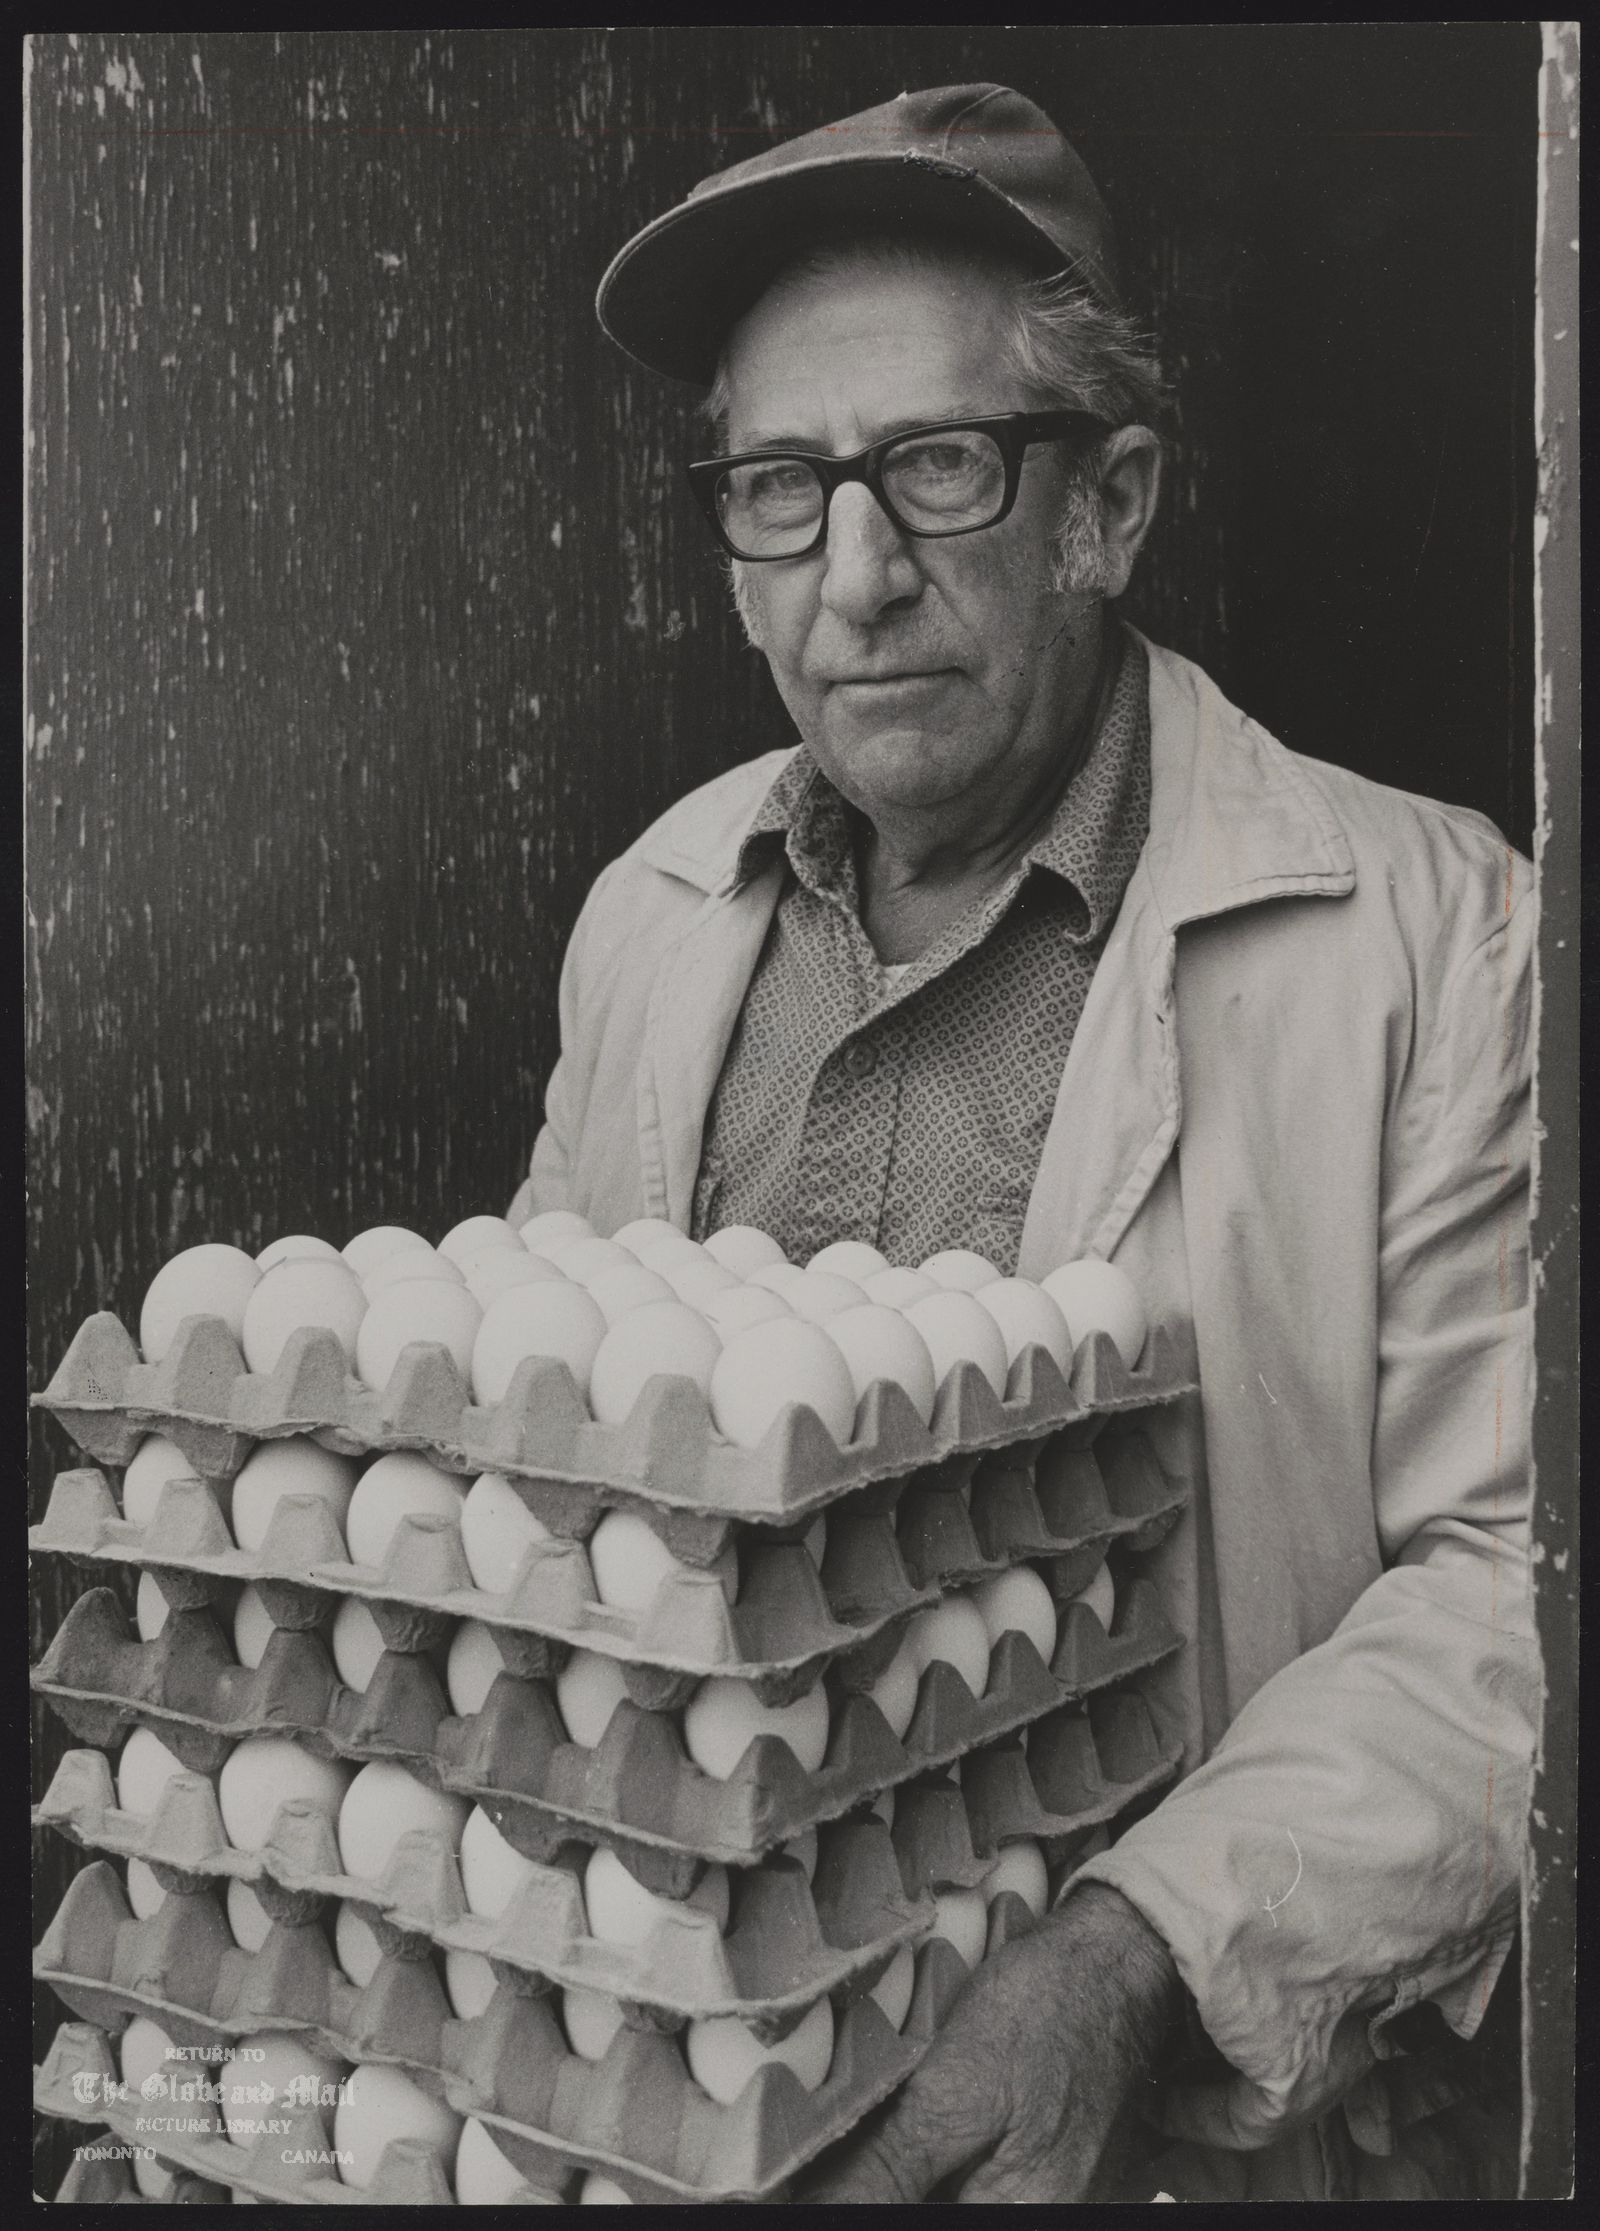 EGGS (Ronald talker carries eggs from henhouse on his chicken farm)